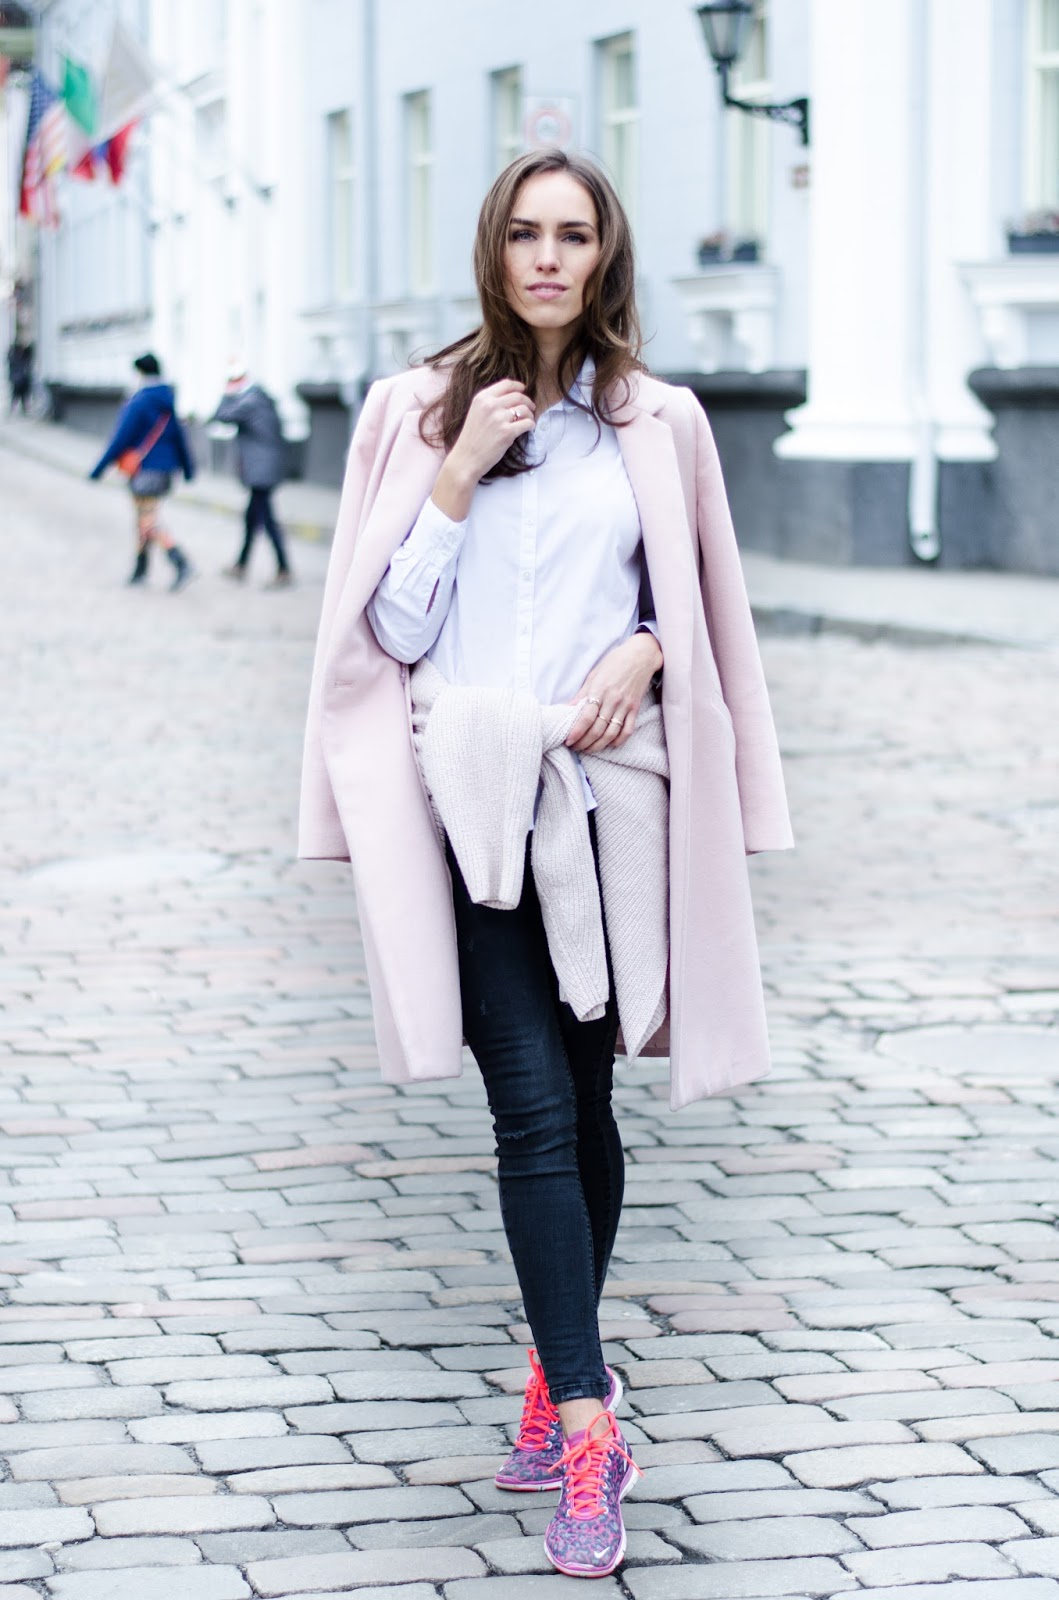 pink coat winter layering outfit